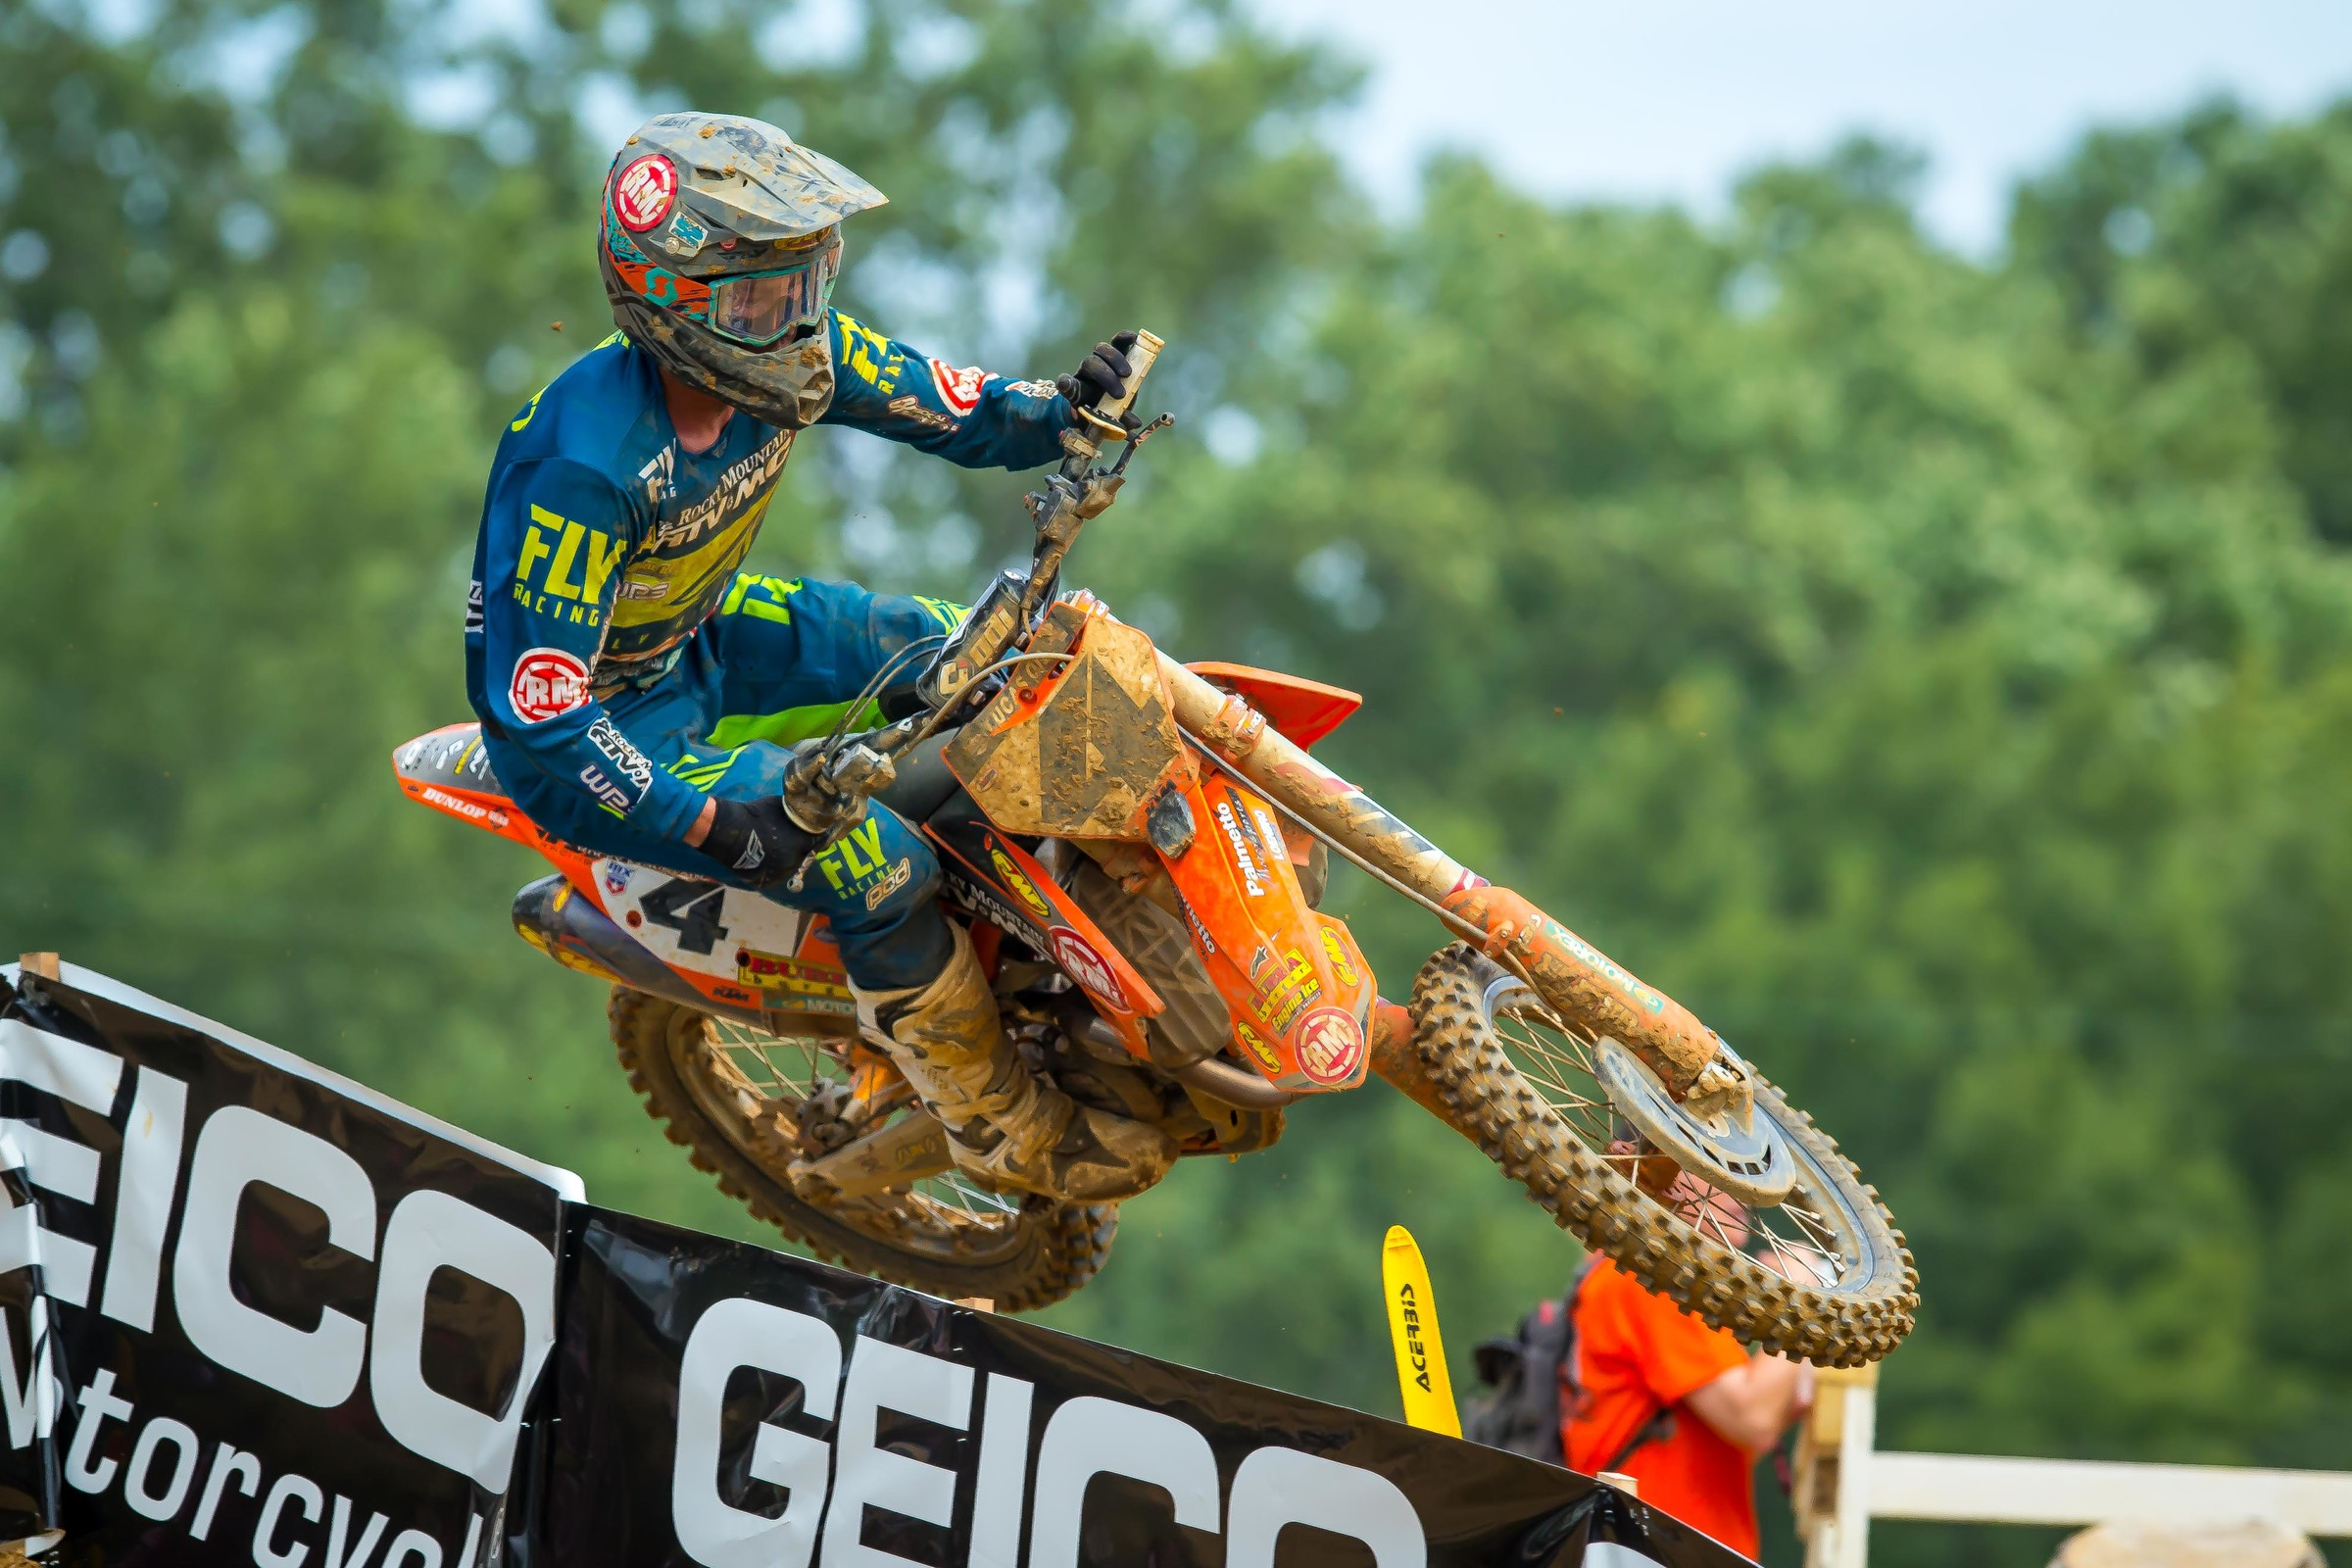 Baggett earned his best moto finish of the season with second place in moto two at Budds Creek.